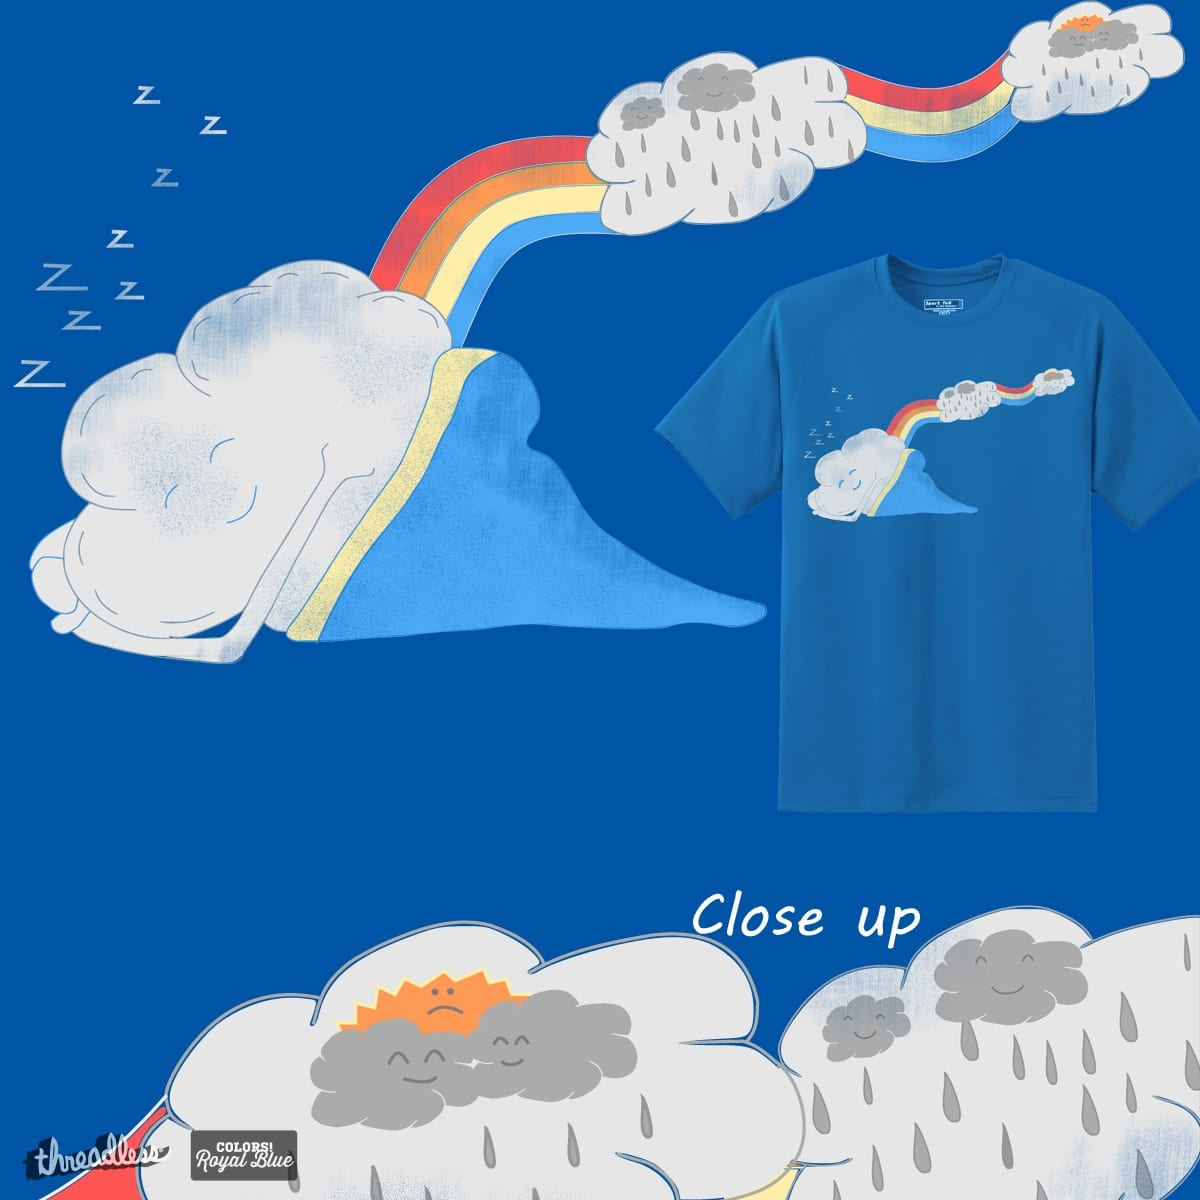 Sweet sweet dreams by pourhippie on Threadless